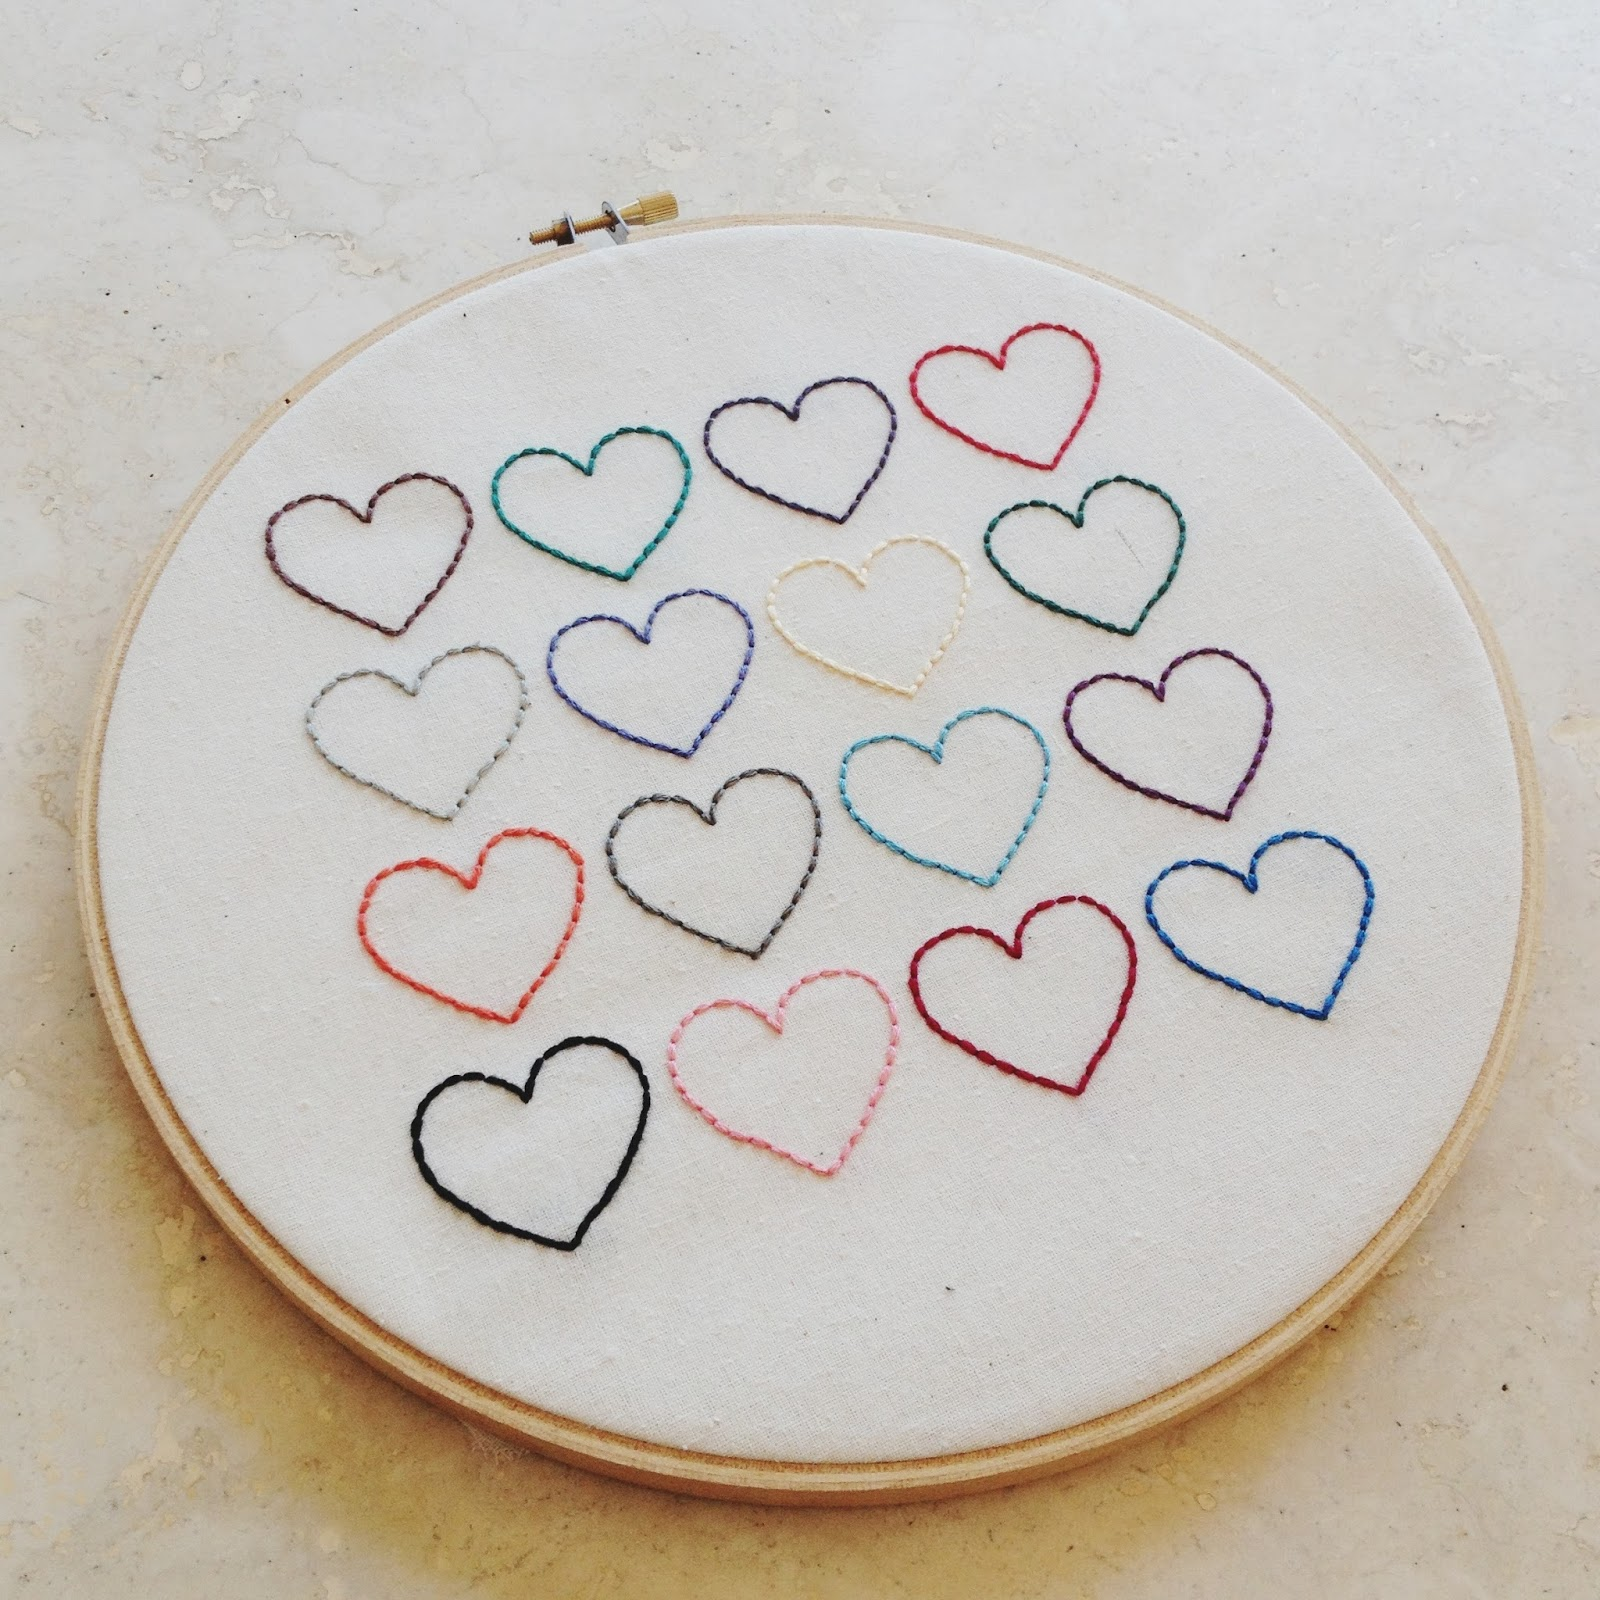 Diy heart embroidery wall hanging yellow dandy transfer embroidery patterns or images onto your fabric it would go perfectly is a kids bedroom or as a part a collage of prints and pictures on your dt1010fo